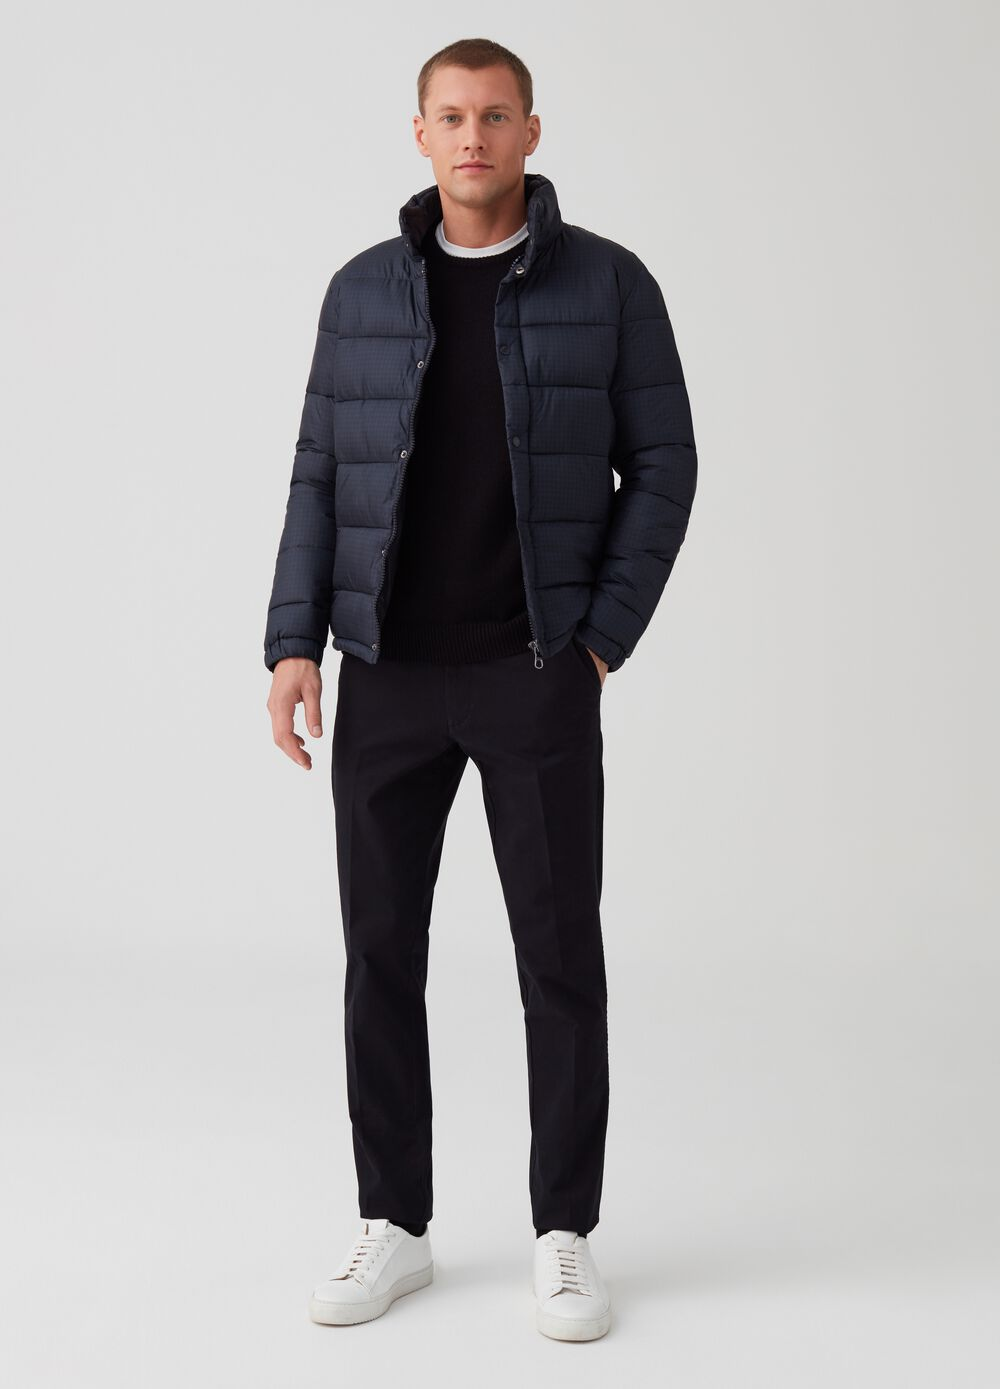 Rumford down jacket with hounds' tooth print